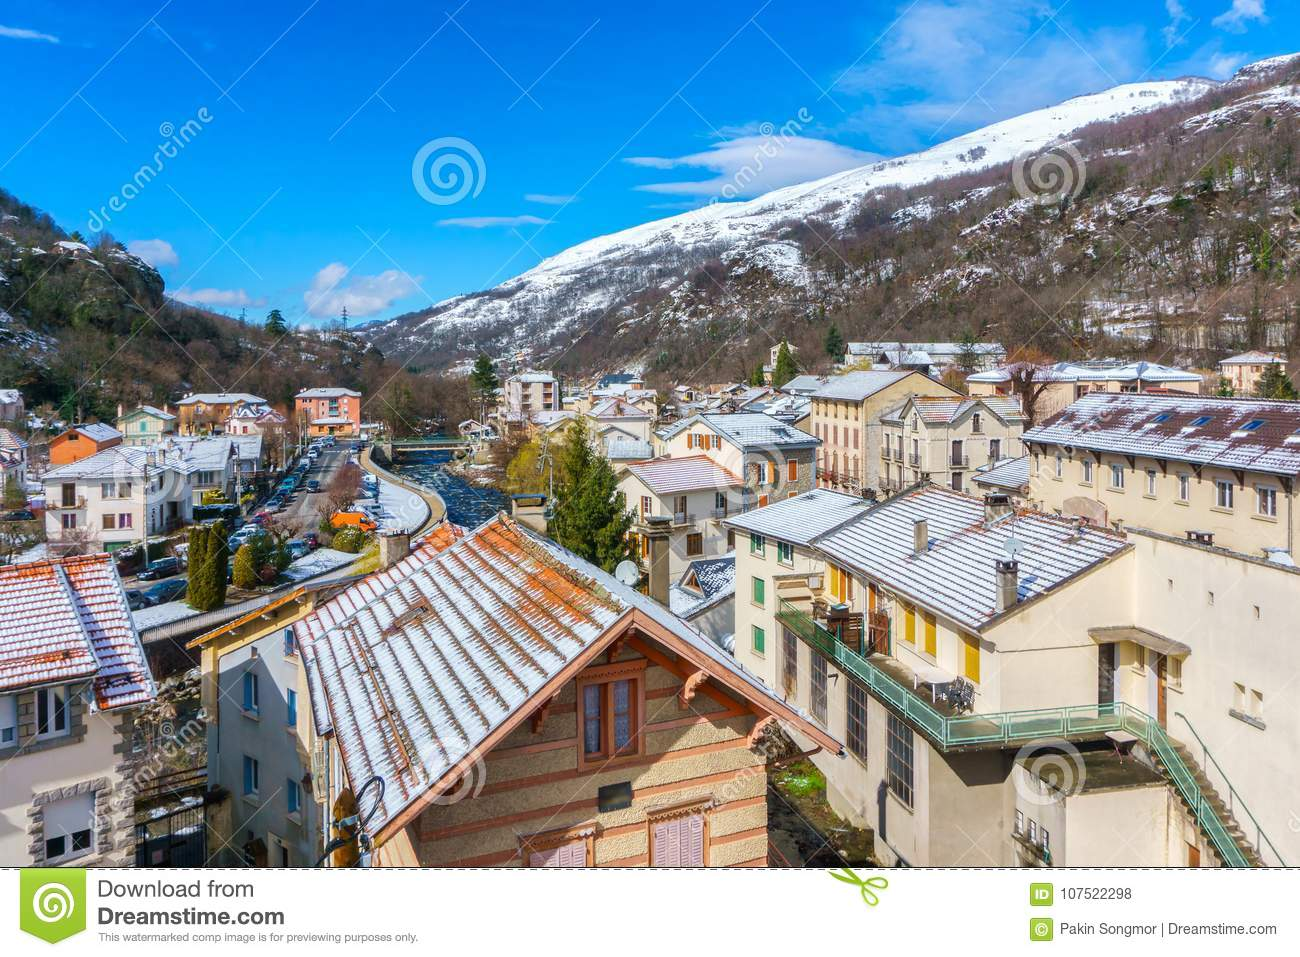 Apartments and hotel of French mountain ski resort in summer sunny day, Ax-les-Thermes